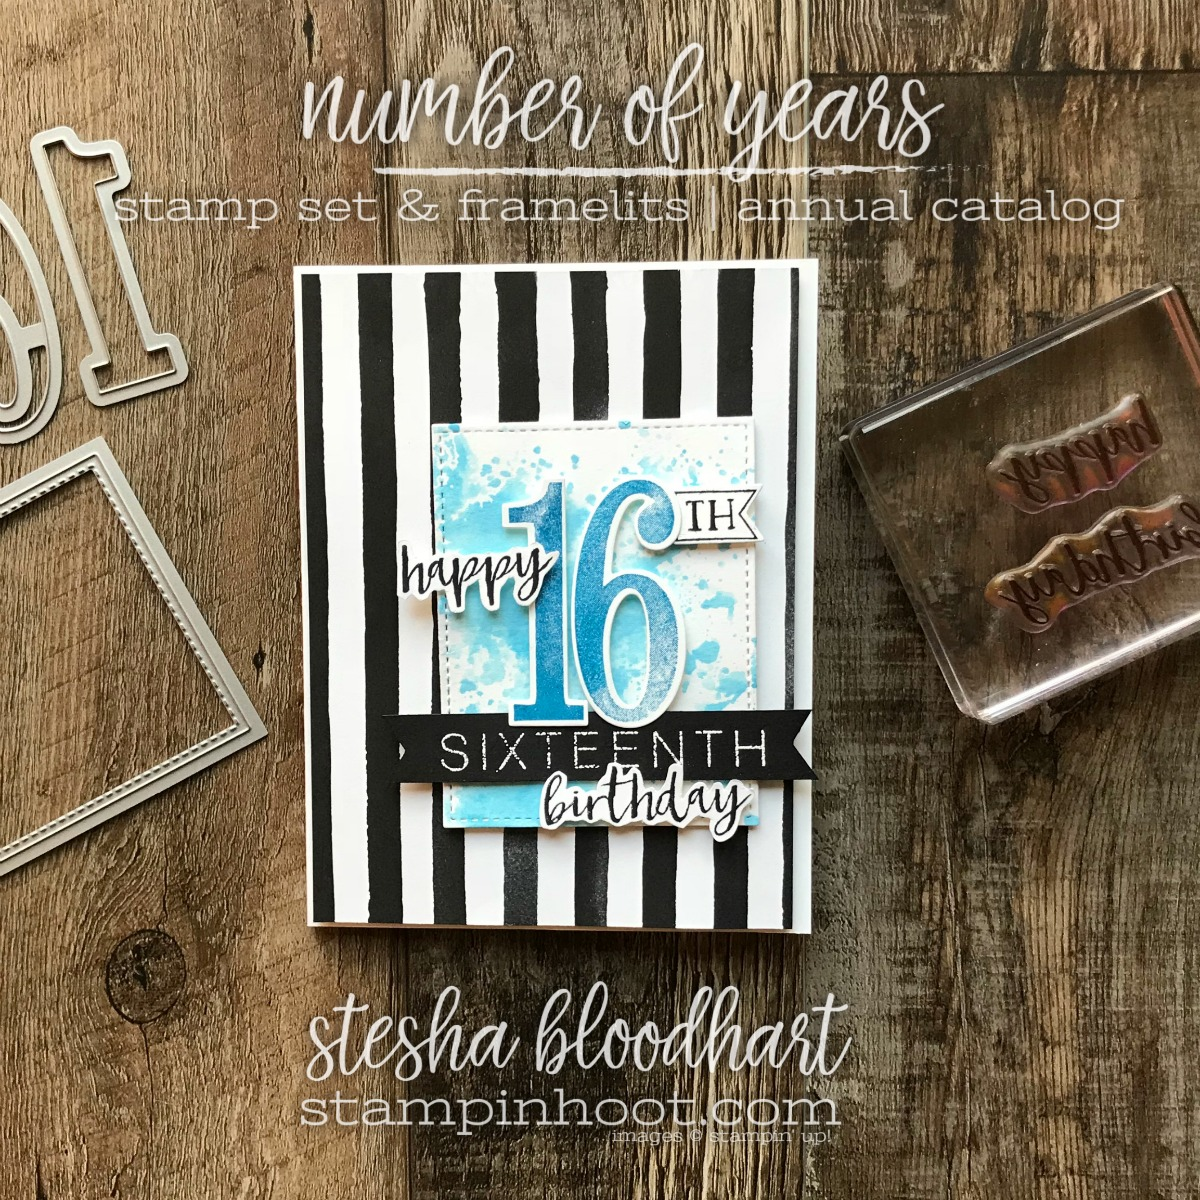 Happy 16th Birthday Card Using the Number of Years & Milestone Moments Stamp Sets by Stampin' Up! Birthday Card created by Stesha Bloodhart, Stampin' Hoot! #steshabloodhart #stampinhoot